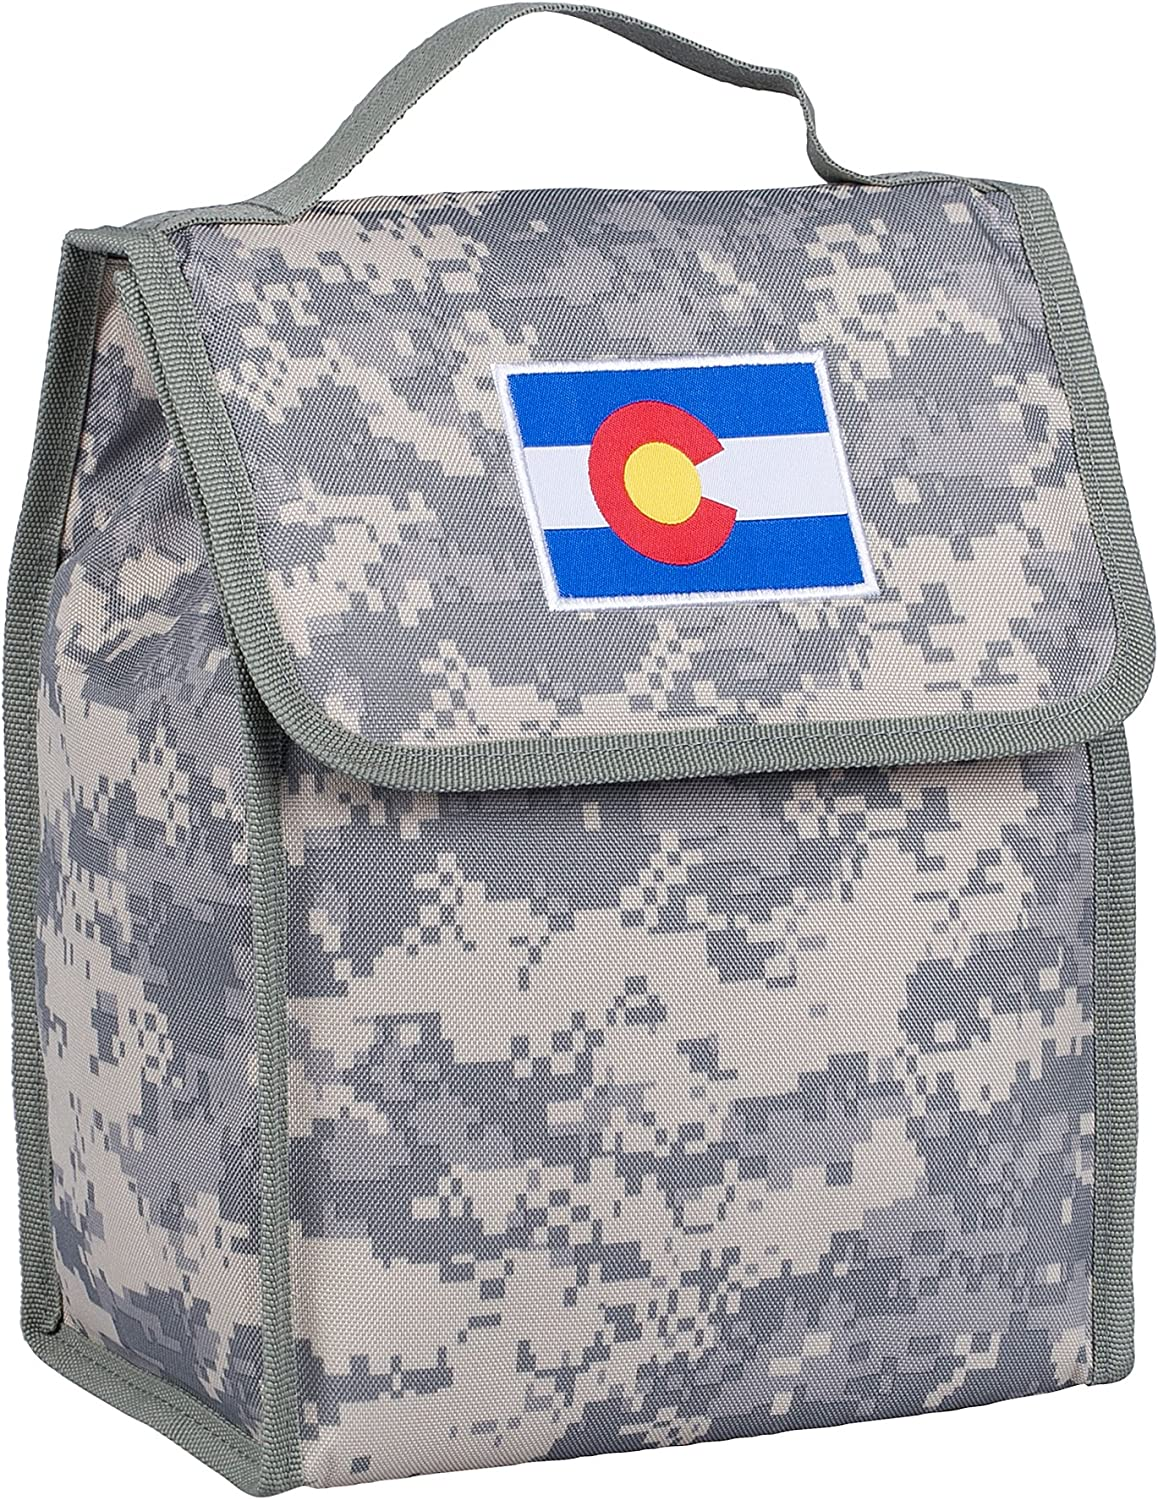 Colorado Digital Camo Lunch Bags Measures 10 x 8.5 x 5 Inches Wildkin Kids Insulated Lunch Bag For Boys /& Girls Perfect Size for Packing Hot or Cold Snacks for School /& Travel BPA-free